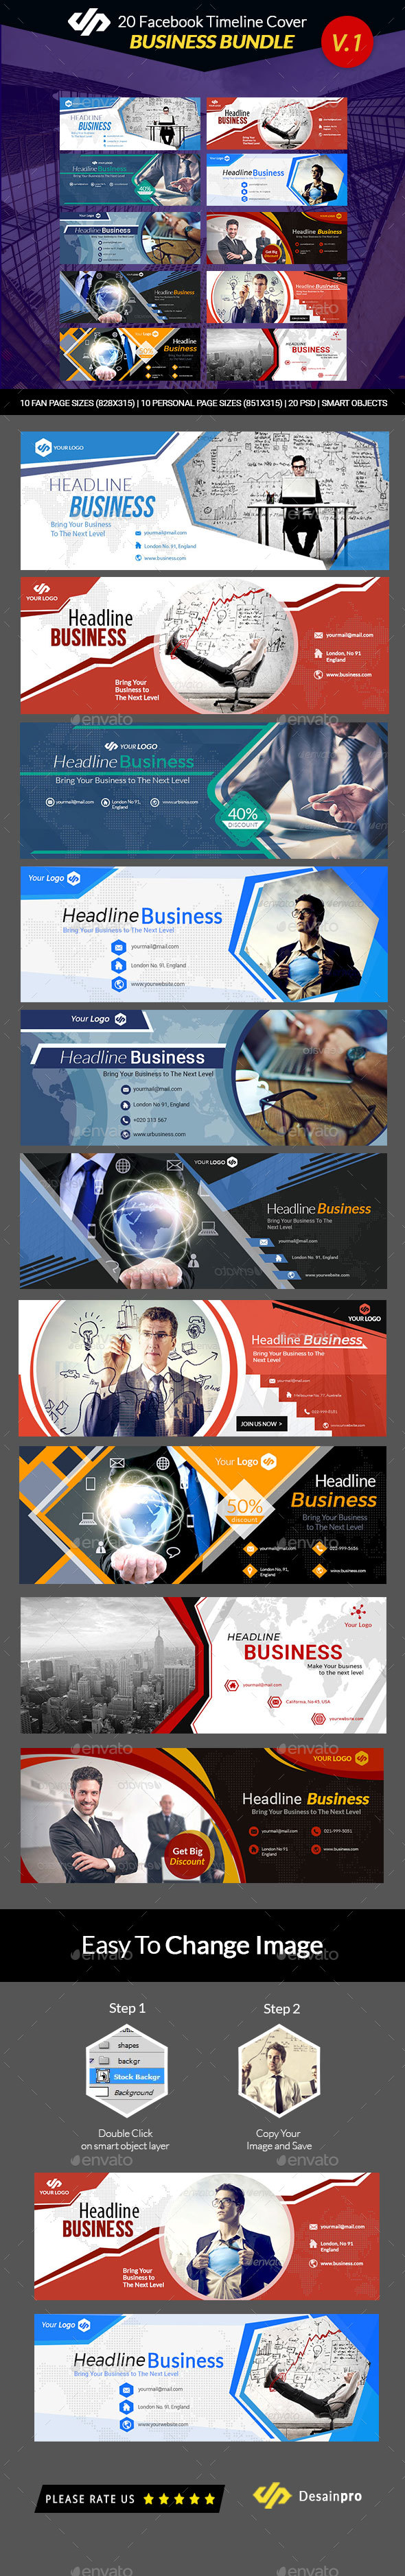 GraphicRiver 20 FB Business Timeline Covers Bundle AR 21152251